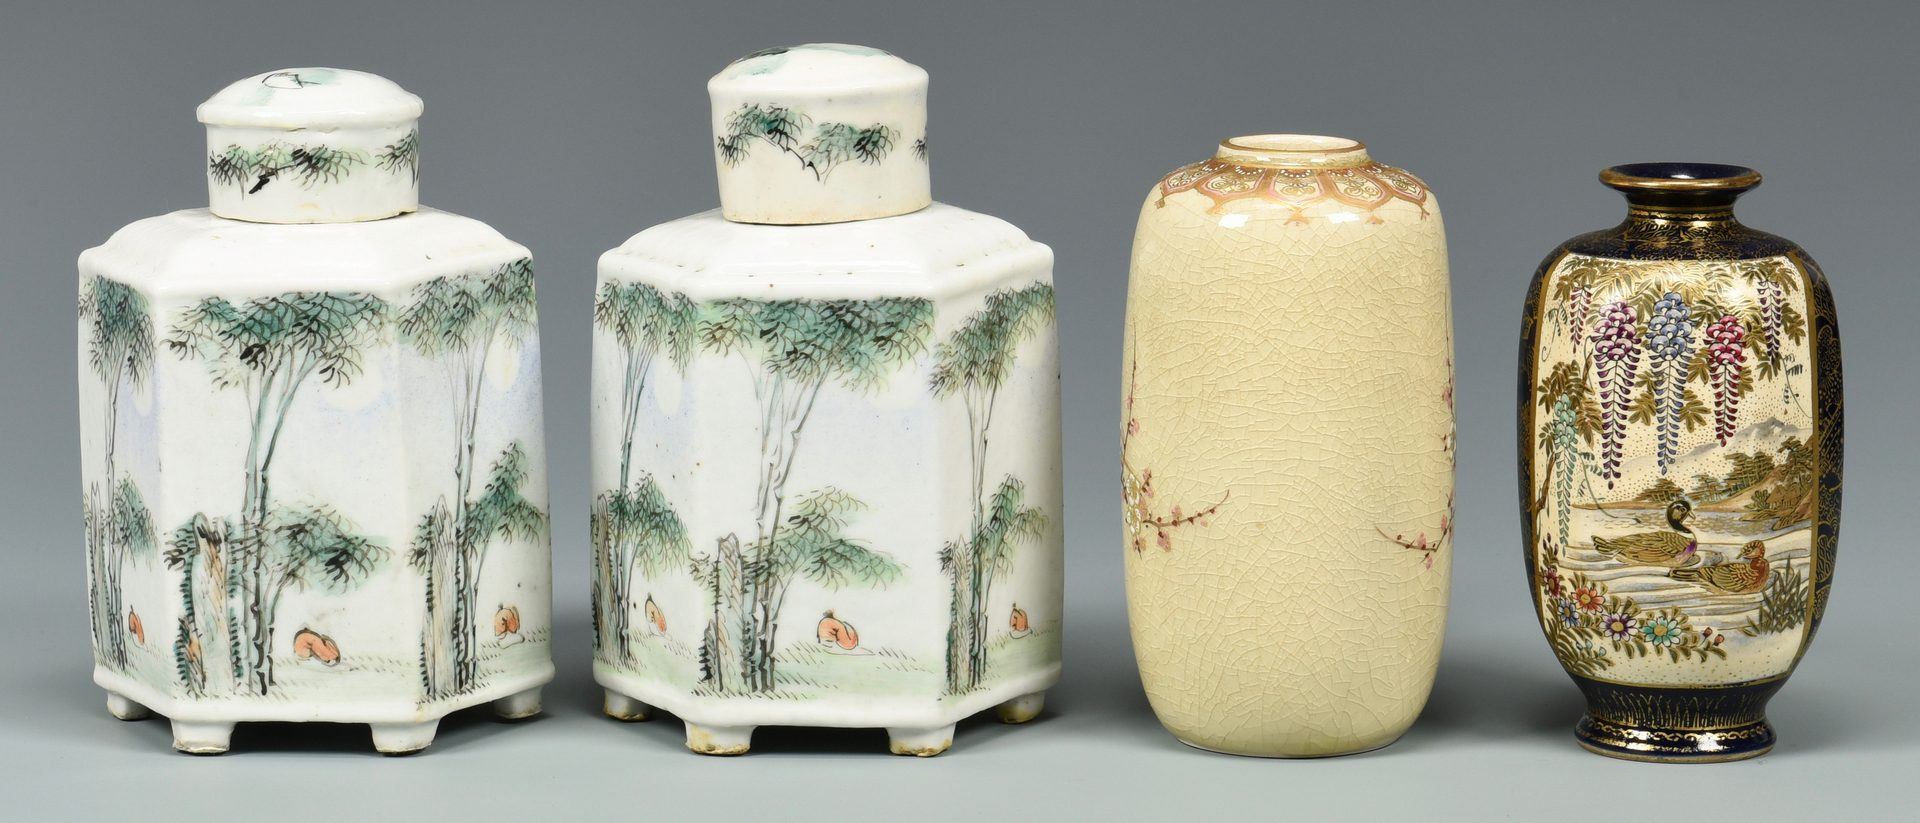 Lot 340: Assorted Group Japanese Porcelain, 10 items